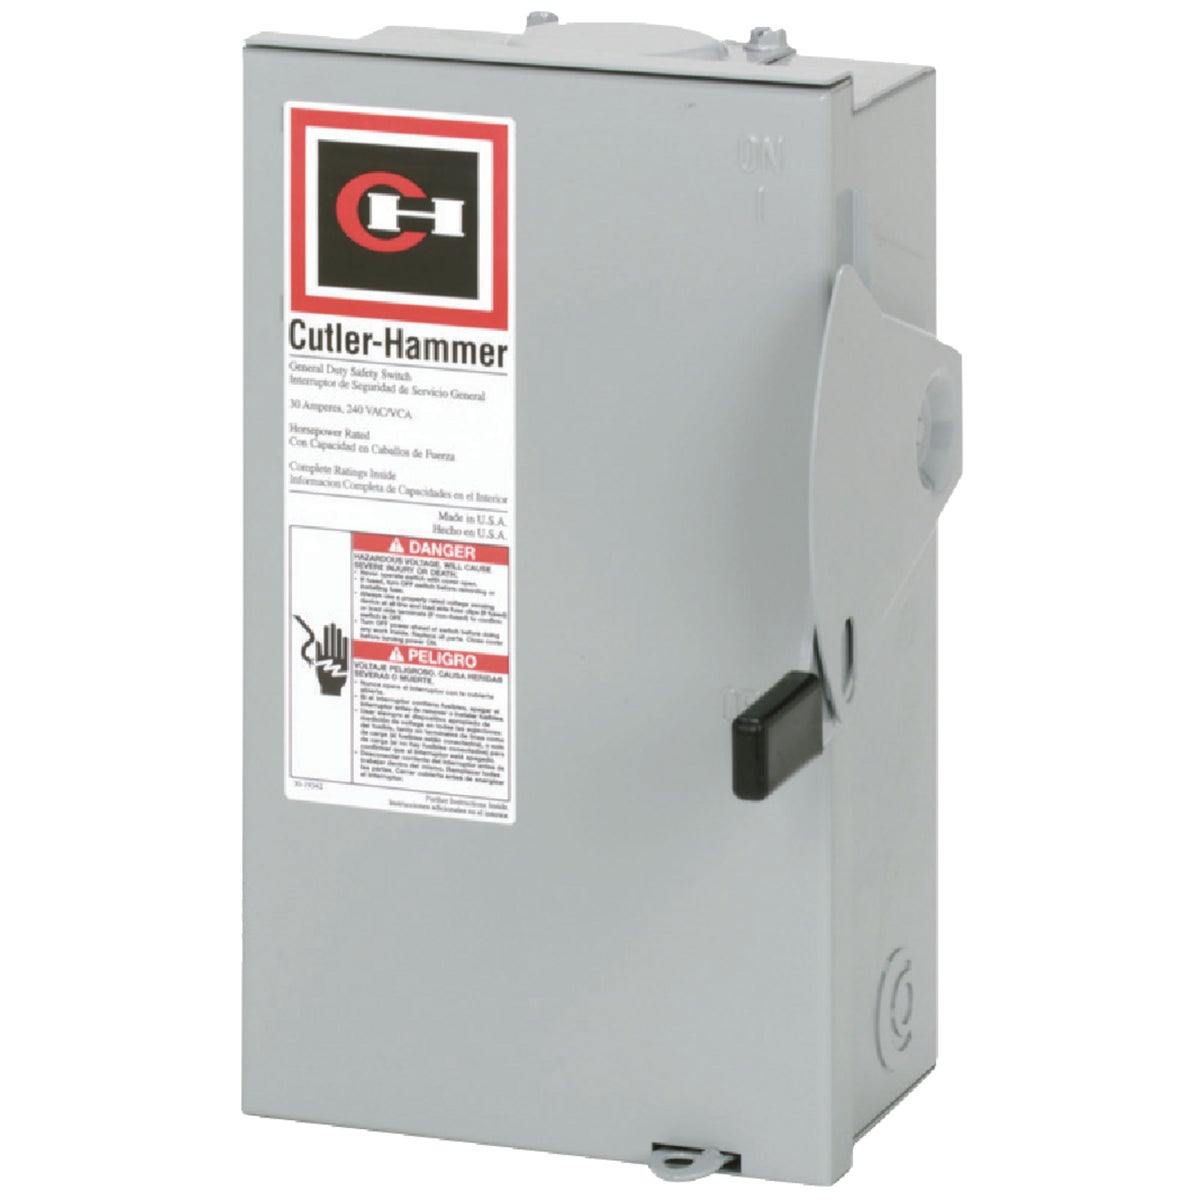 30A SAFETY SWITCH - DG221NRB by Eaton Corporation